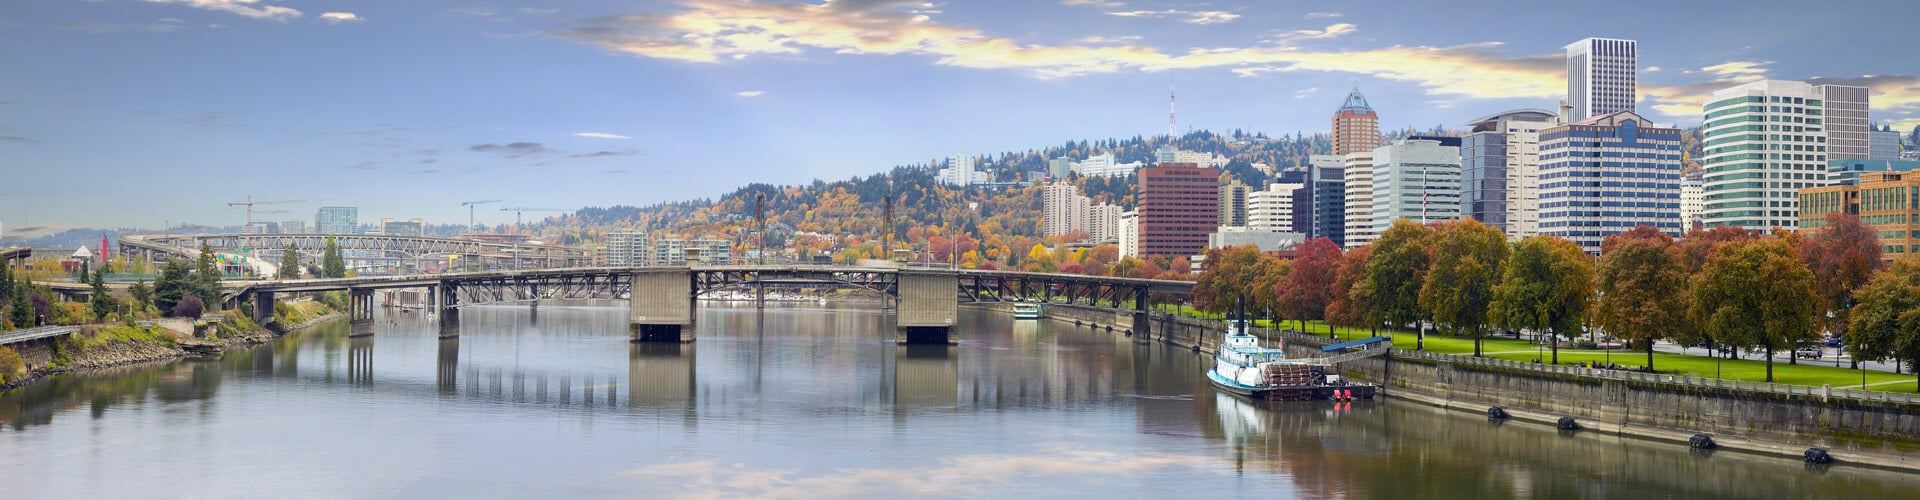 Portland, Oregon: The City Teaching Citizens to Embrace the Environment